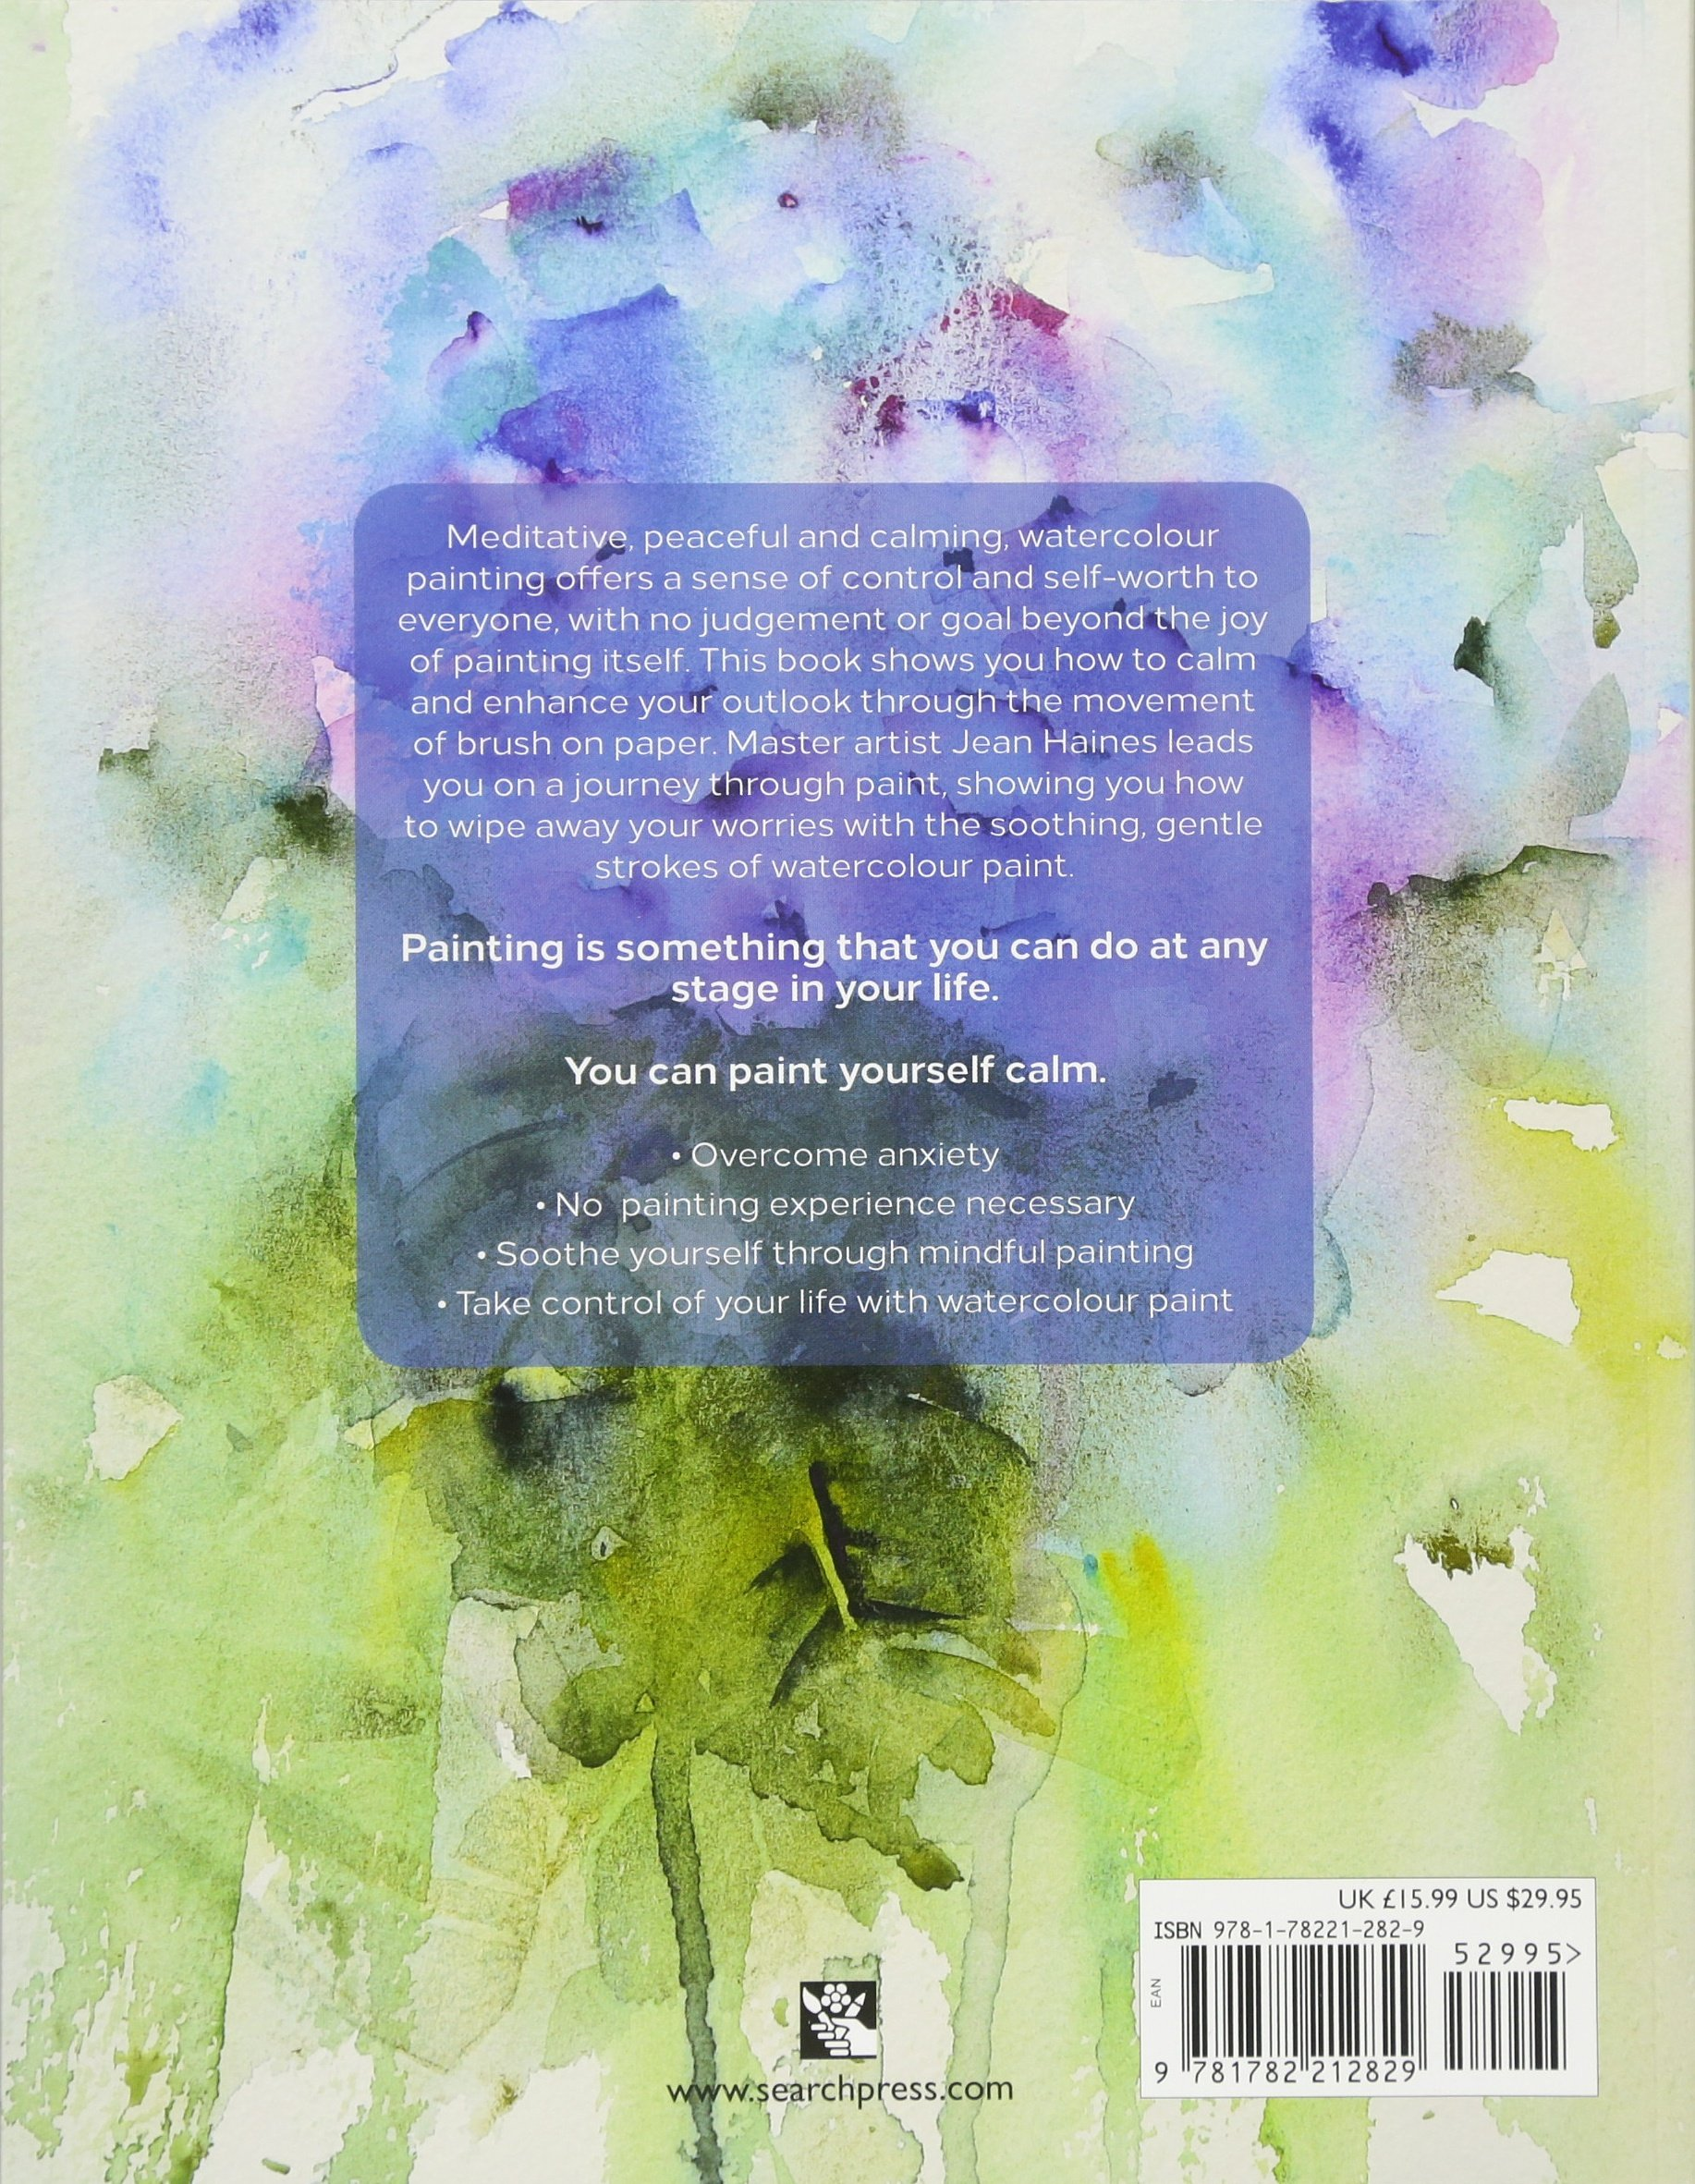 Watercolor books amazon - Amazon Com Jean Haines Paint Yourself Calm Colourful Creative Mindfulness Through Watercolour 9781782212829 Jean Haines Books